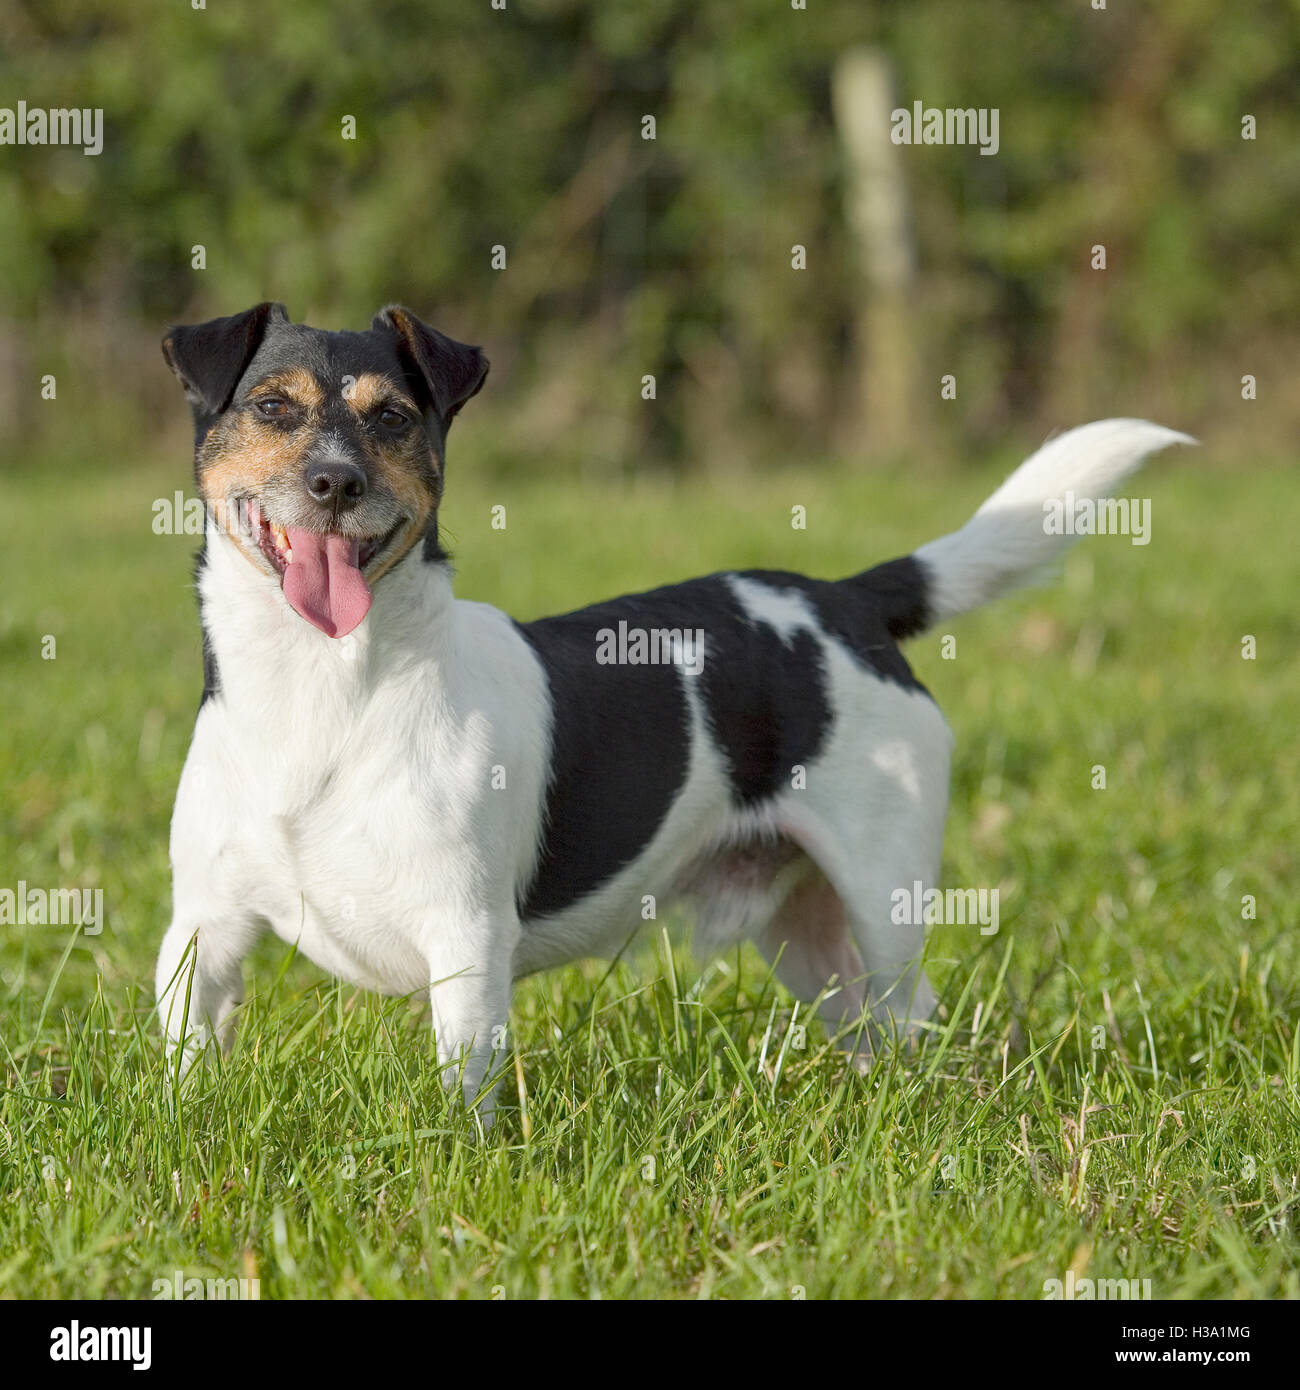 Cross Breed Jack Russell Dog